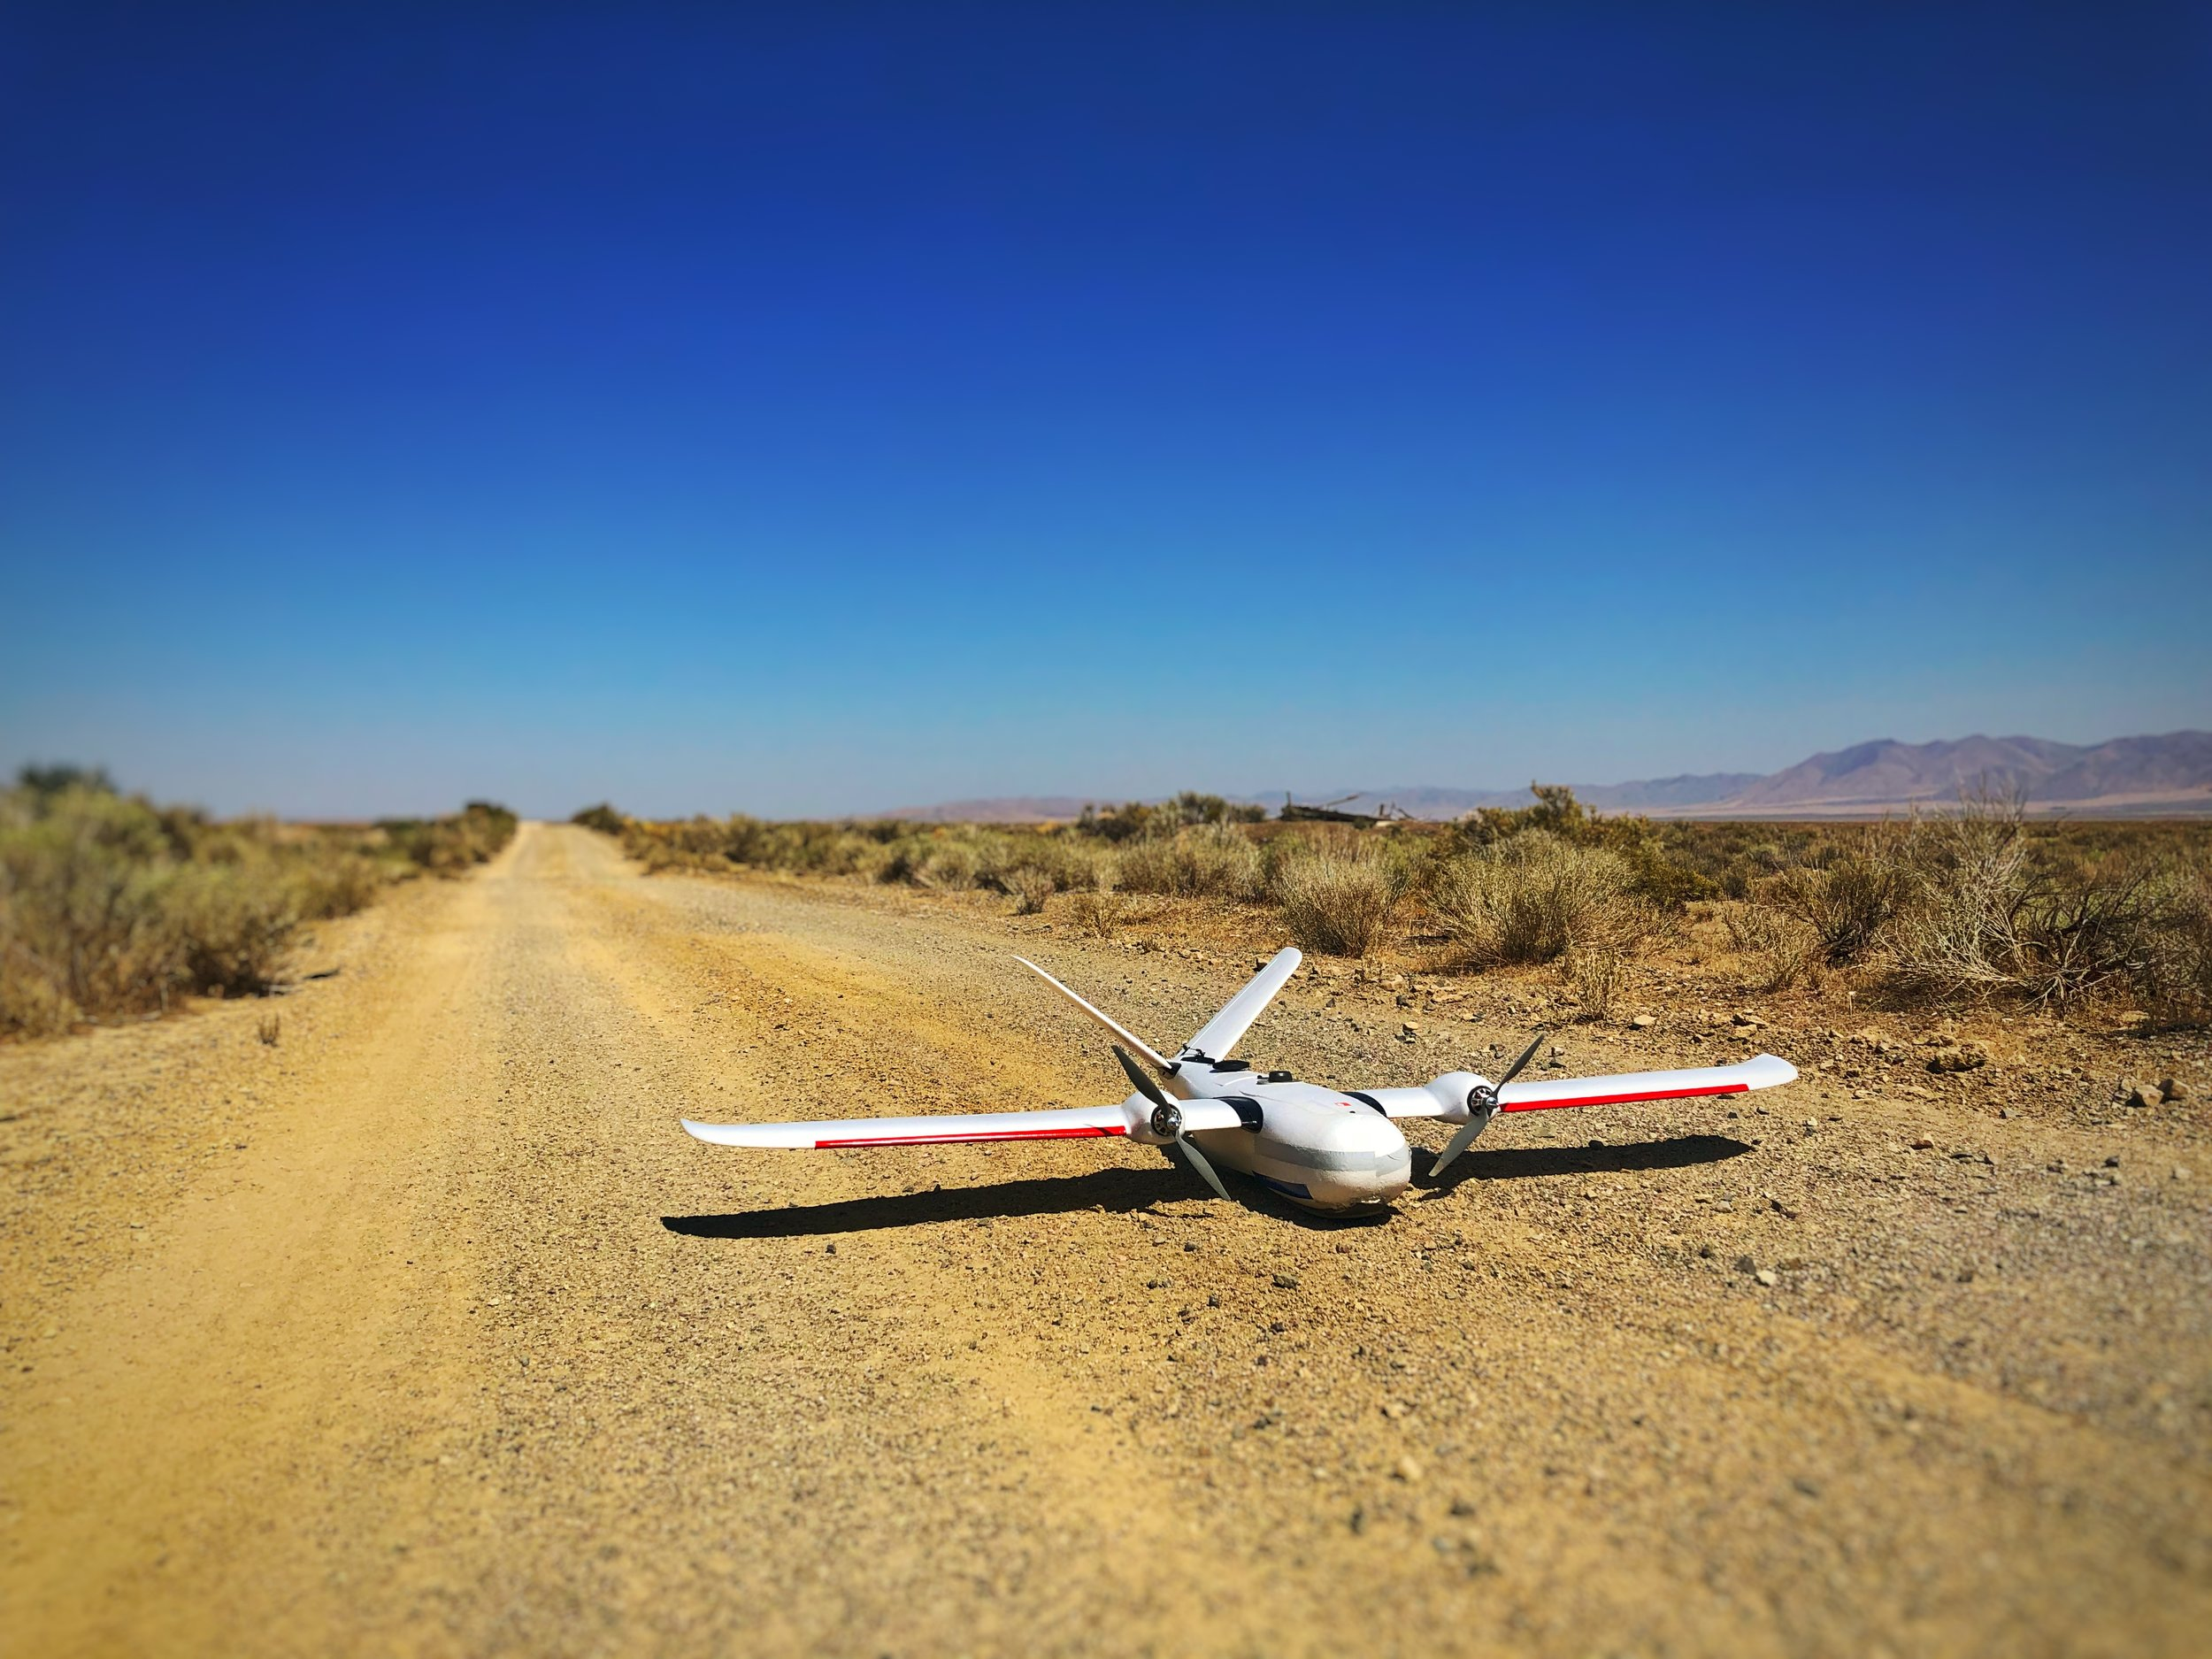 Our Custom fixed wing drone can sustain flight times close to 3 hours on a single battery, Collecting images of 1,500 acres of land at a time. We can collect roughly 2,800-3,000 acres worth of data in a single day.